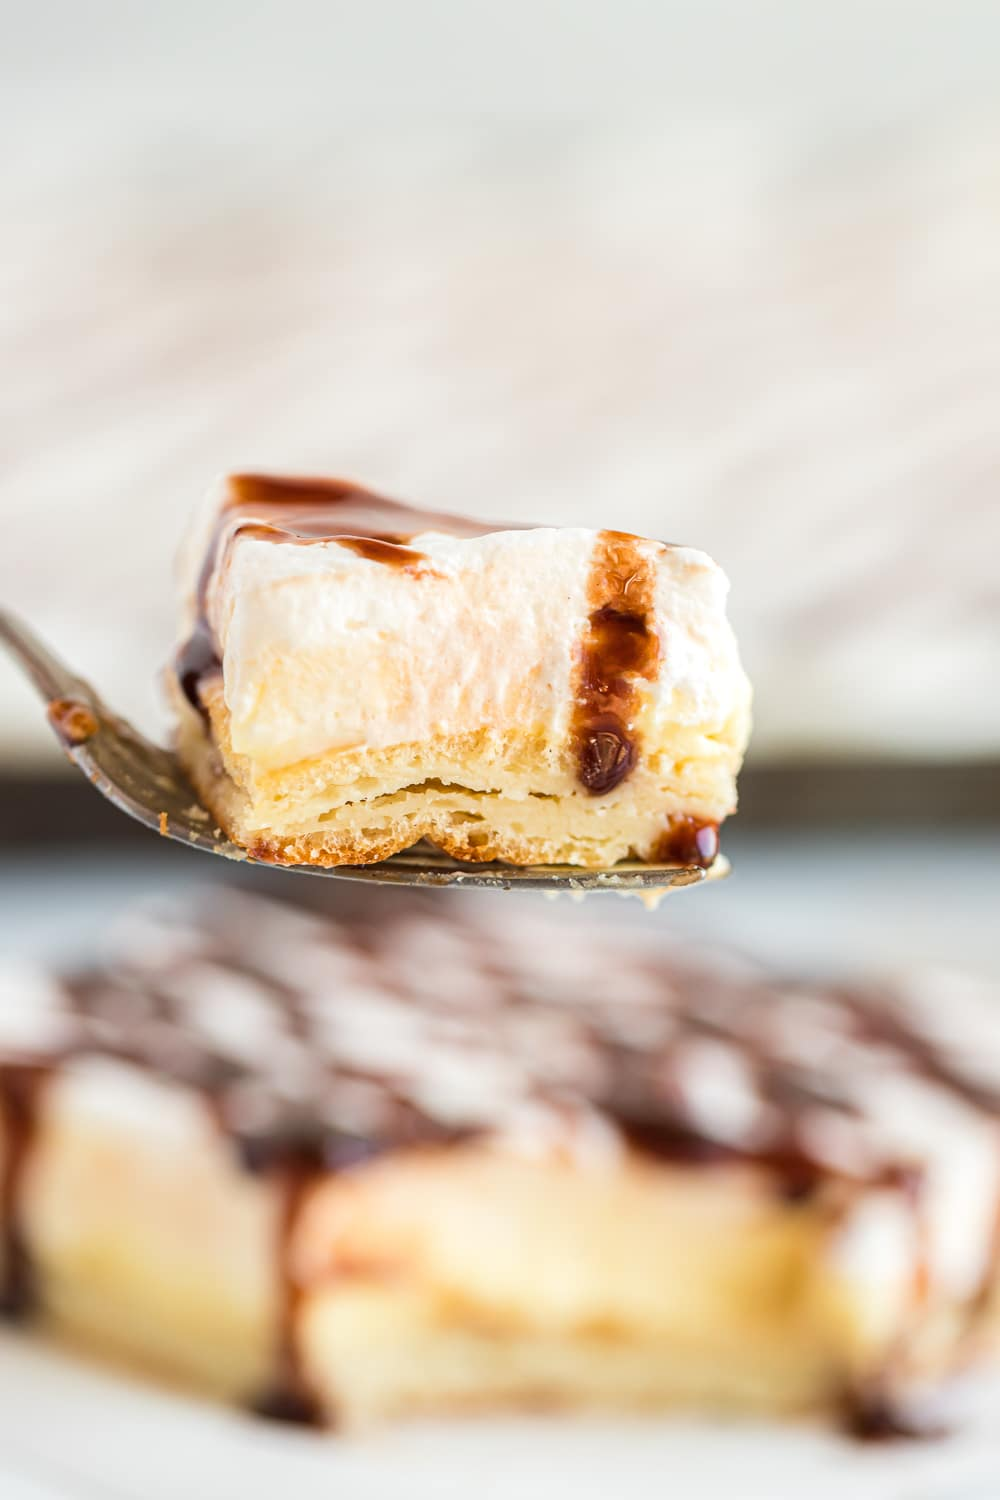 eclair cake on fork